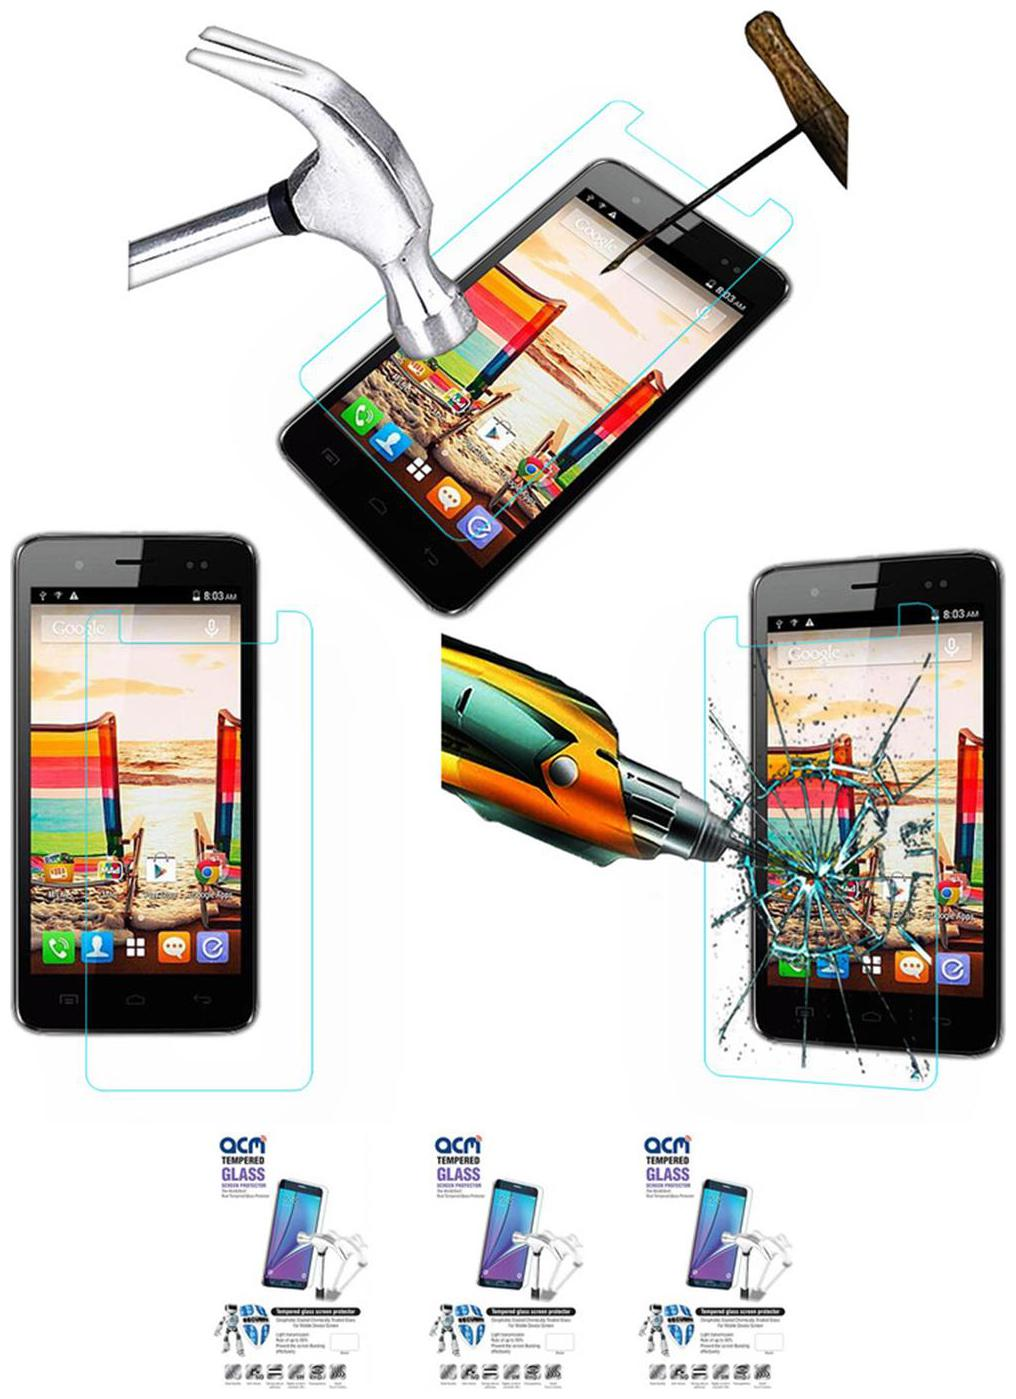 Acm Pack Of 3 Tempered Glass Screenguard For Micromax Bolt A069 Mobile Screen Guard Scratch Protector